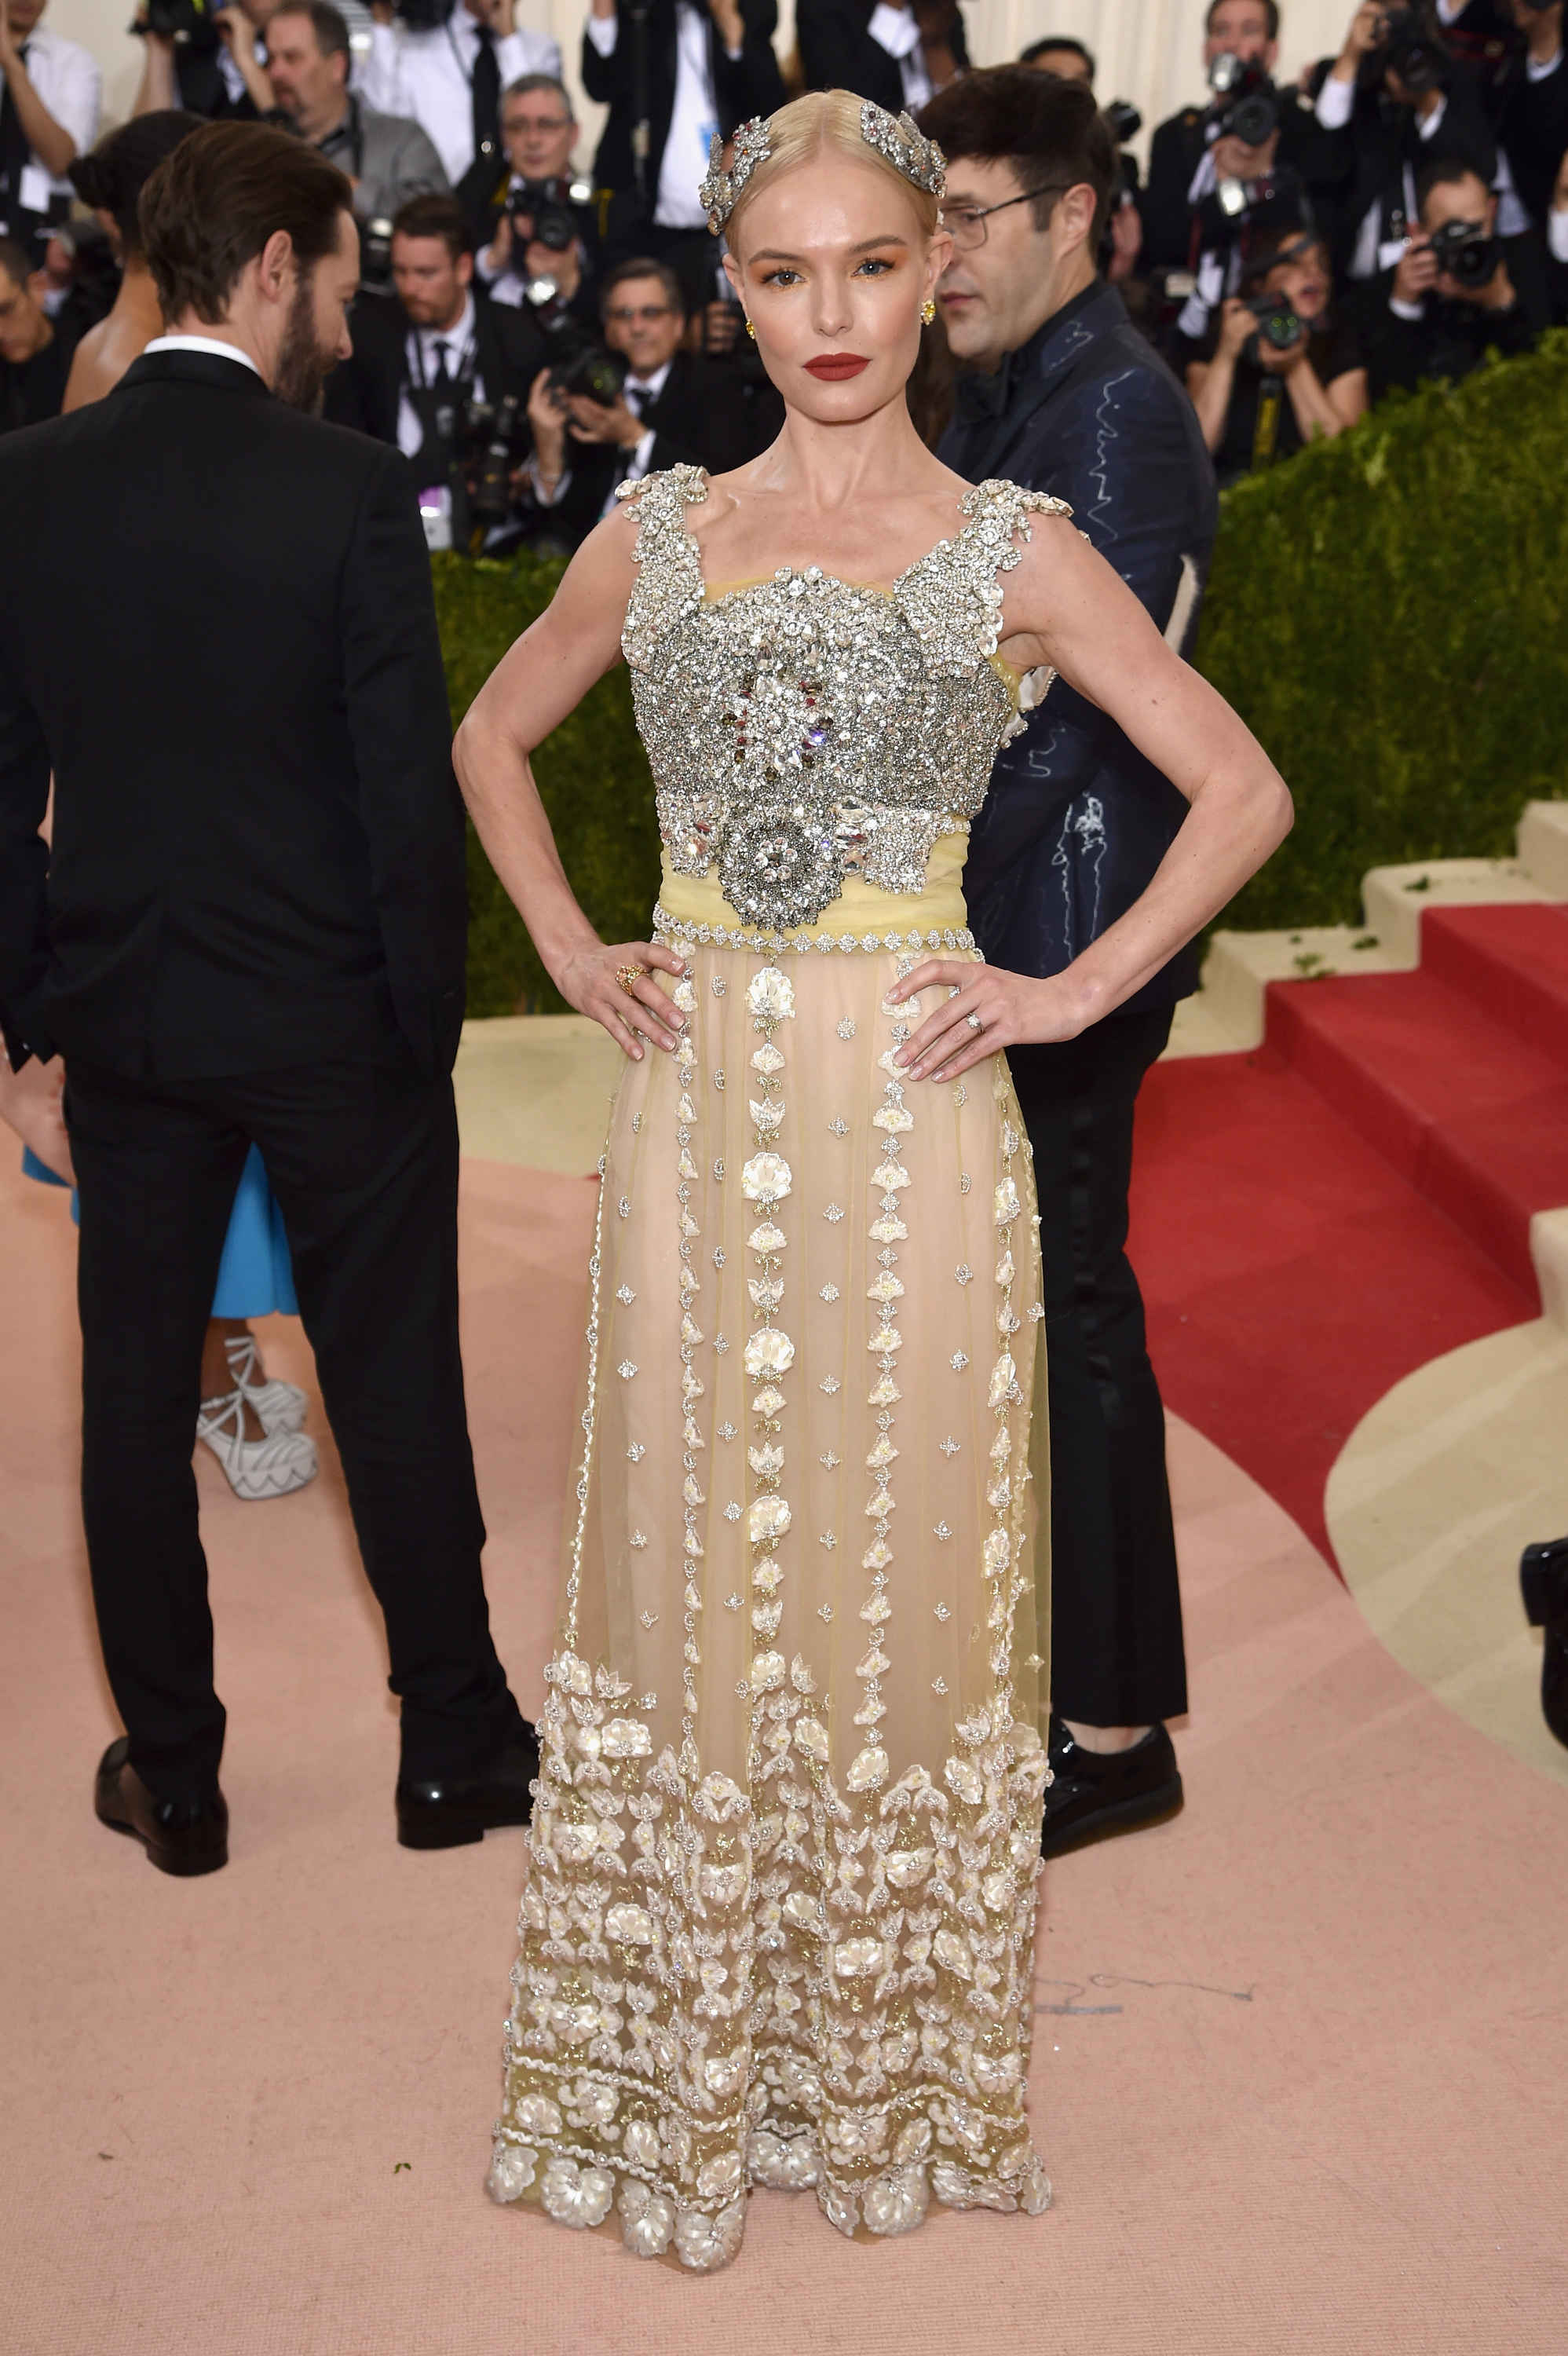 Kate Bosworth in Dolce & Gabbana, because it looks like a custom.